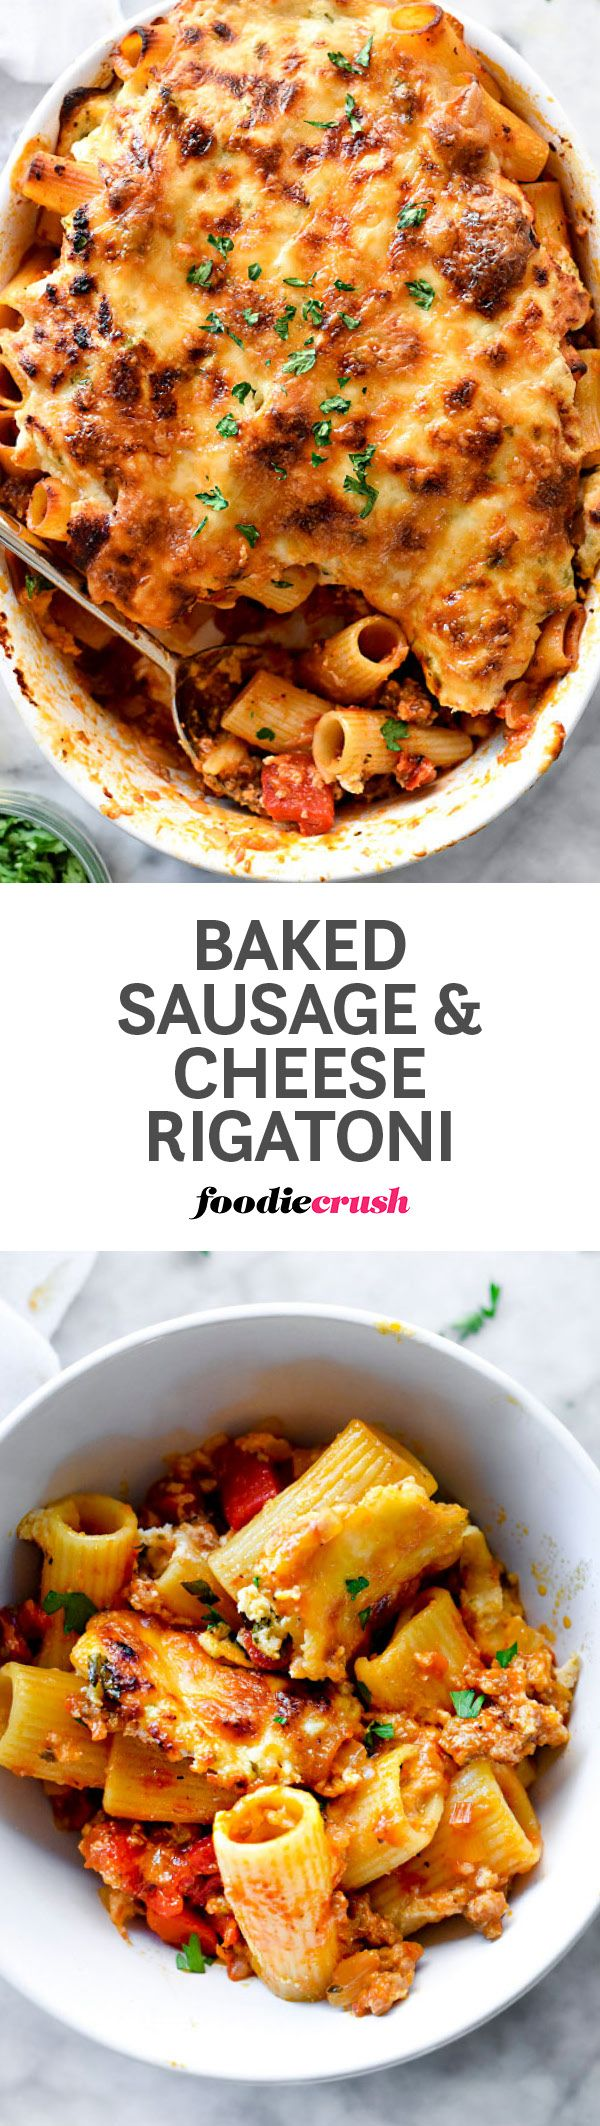 Sweet Italian sausage, roasted red bell peppers and thick layers of ricotta and provolone cheese make this baked rigatoni pasta a family favorite. | http://foodiecrush.com #pasta #rigatoni #italianfood